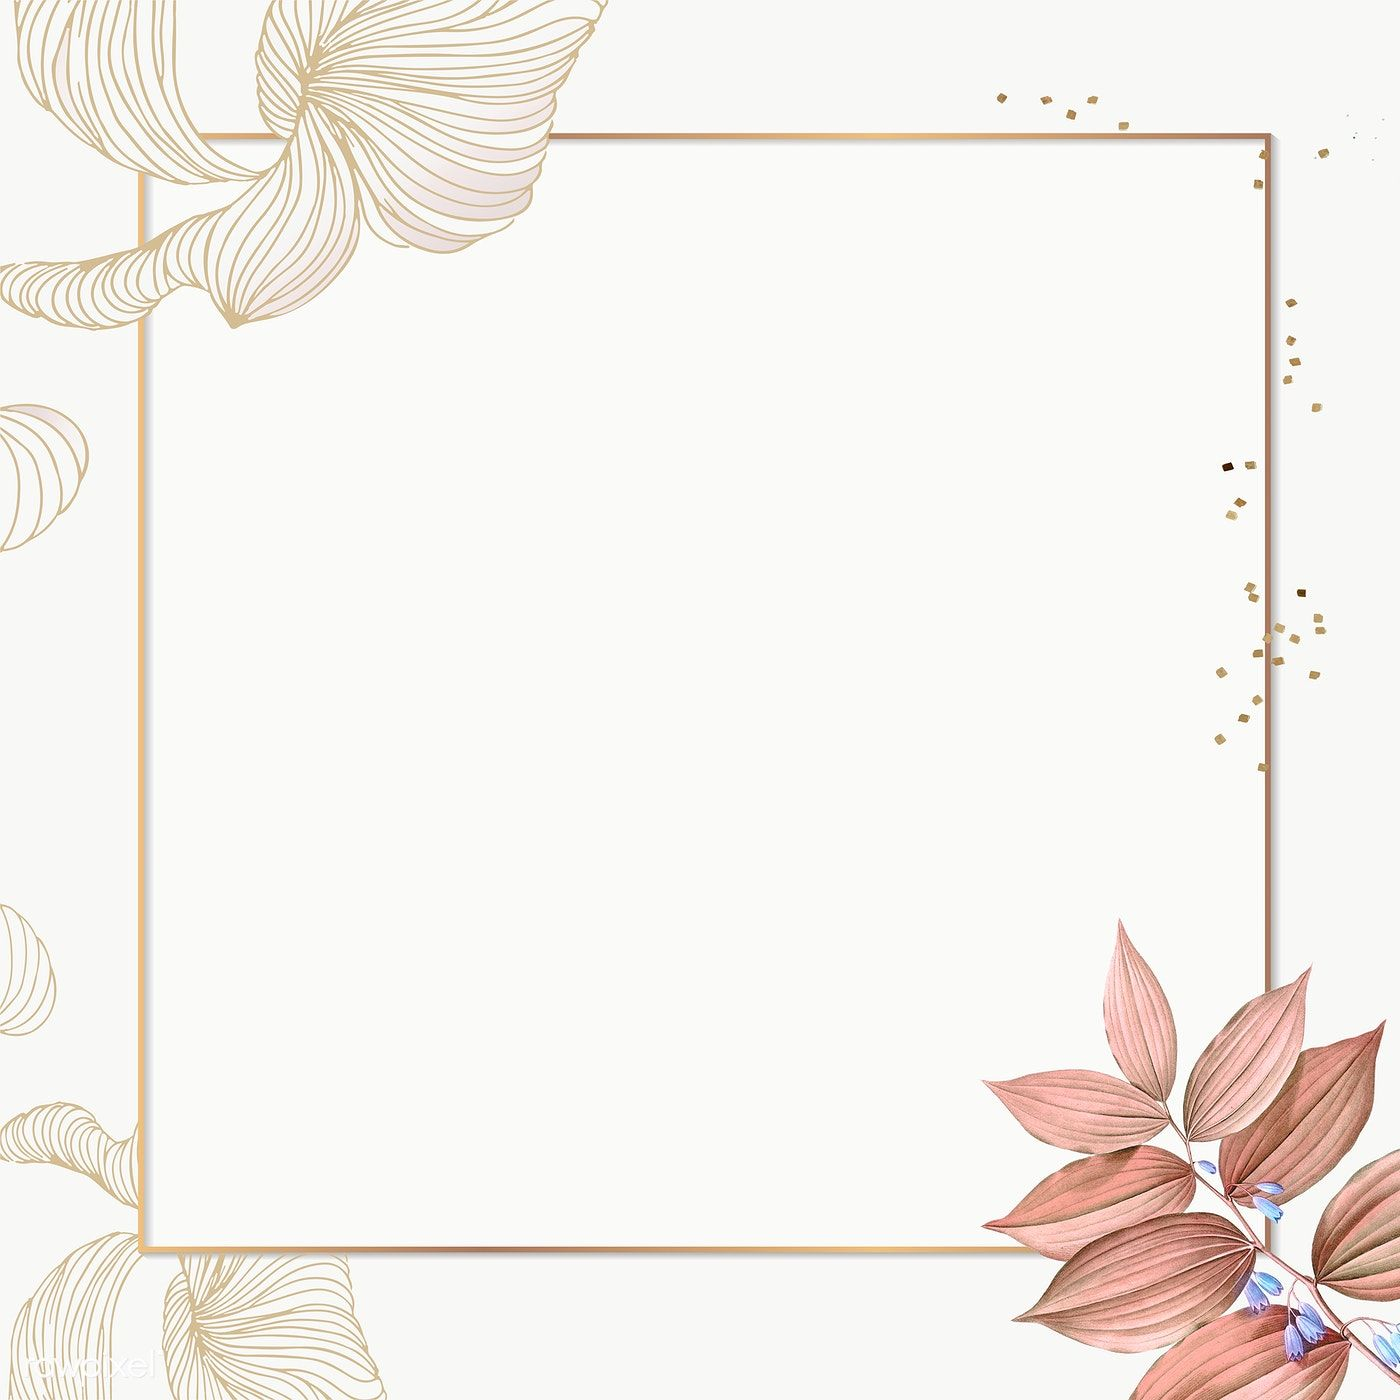 Download Premium Png Of Golden Floral Square Frame Transparent Png 2027193 Floral Squares Square Frames Pink Abstract